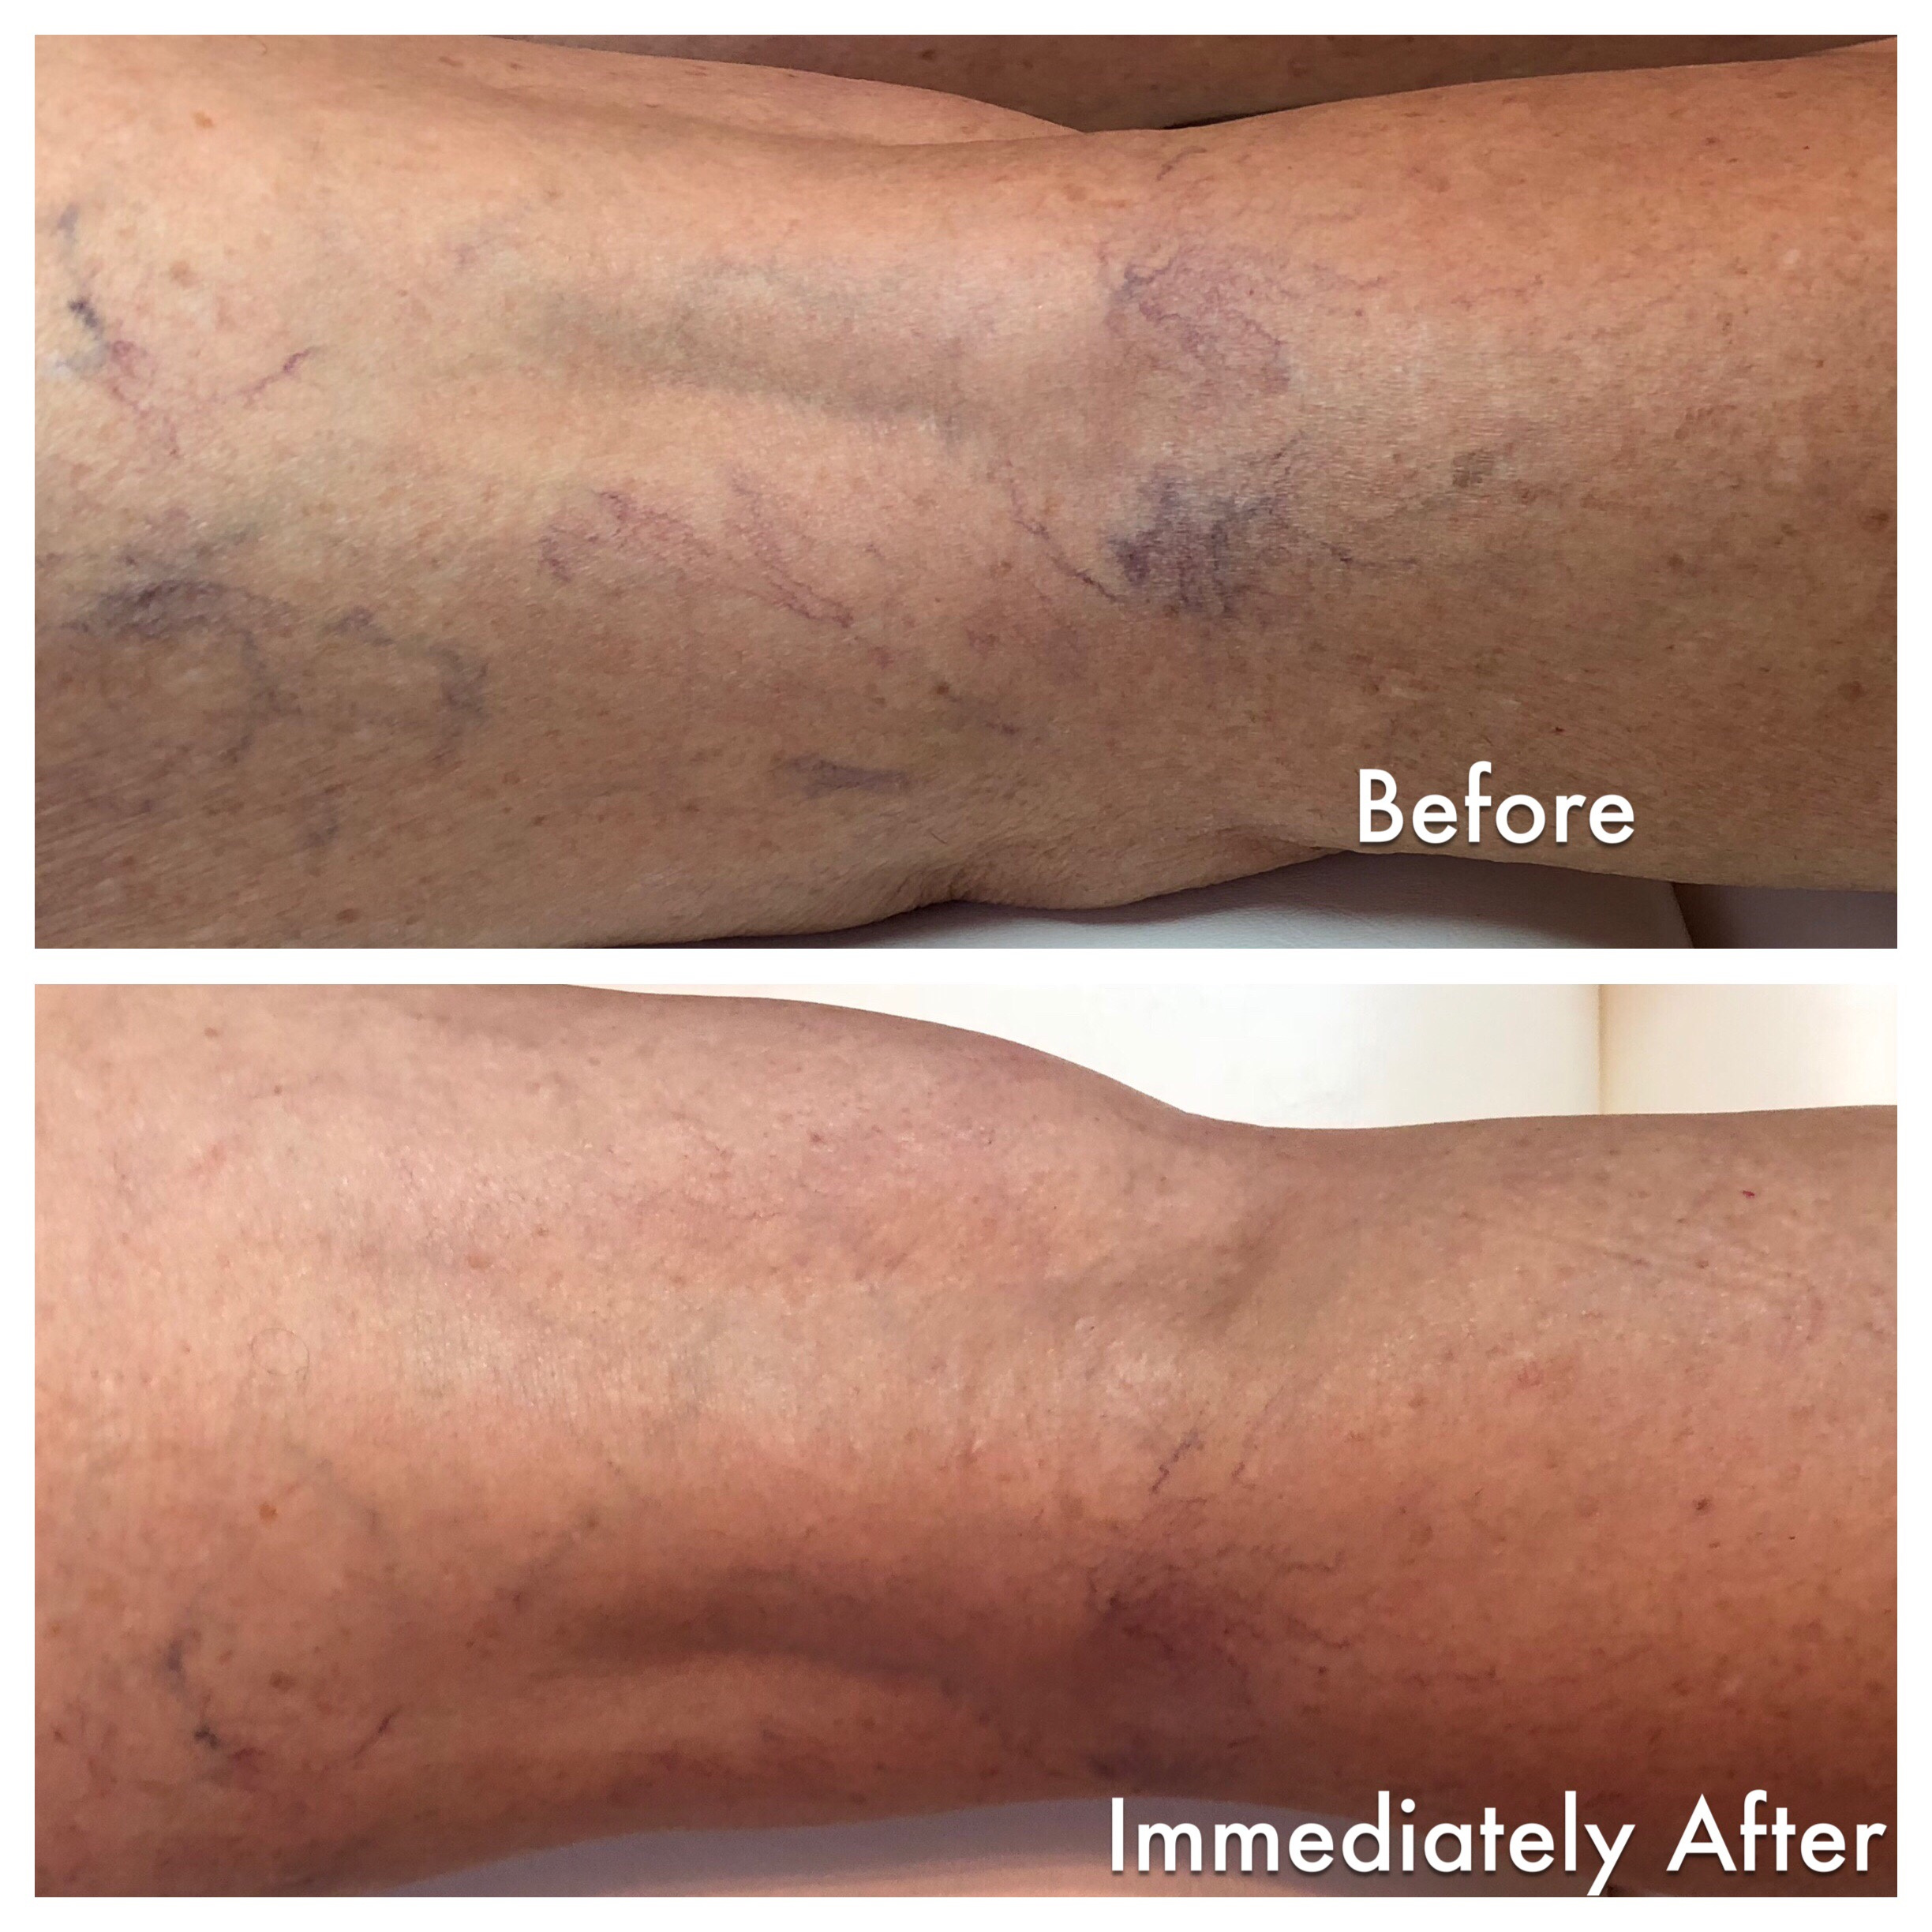 Before after 1 sclerotherapy treatment